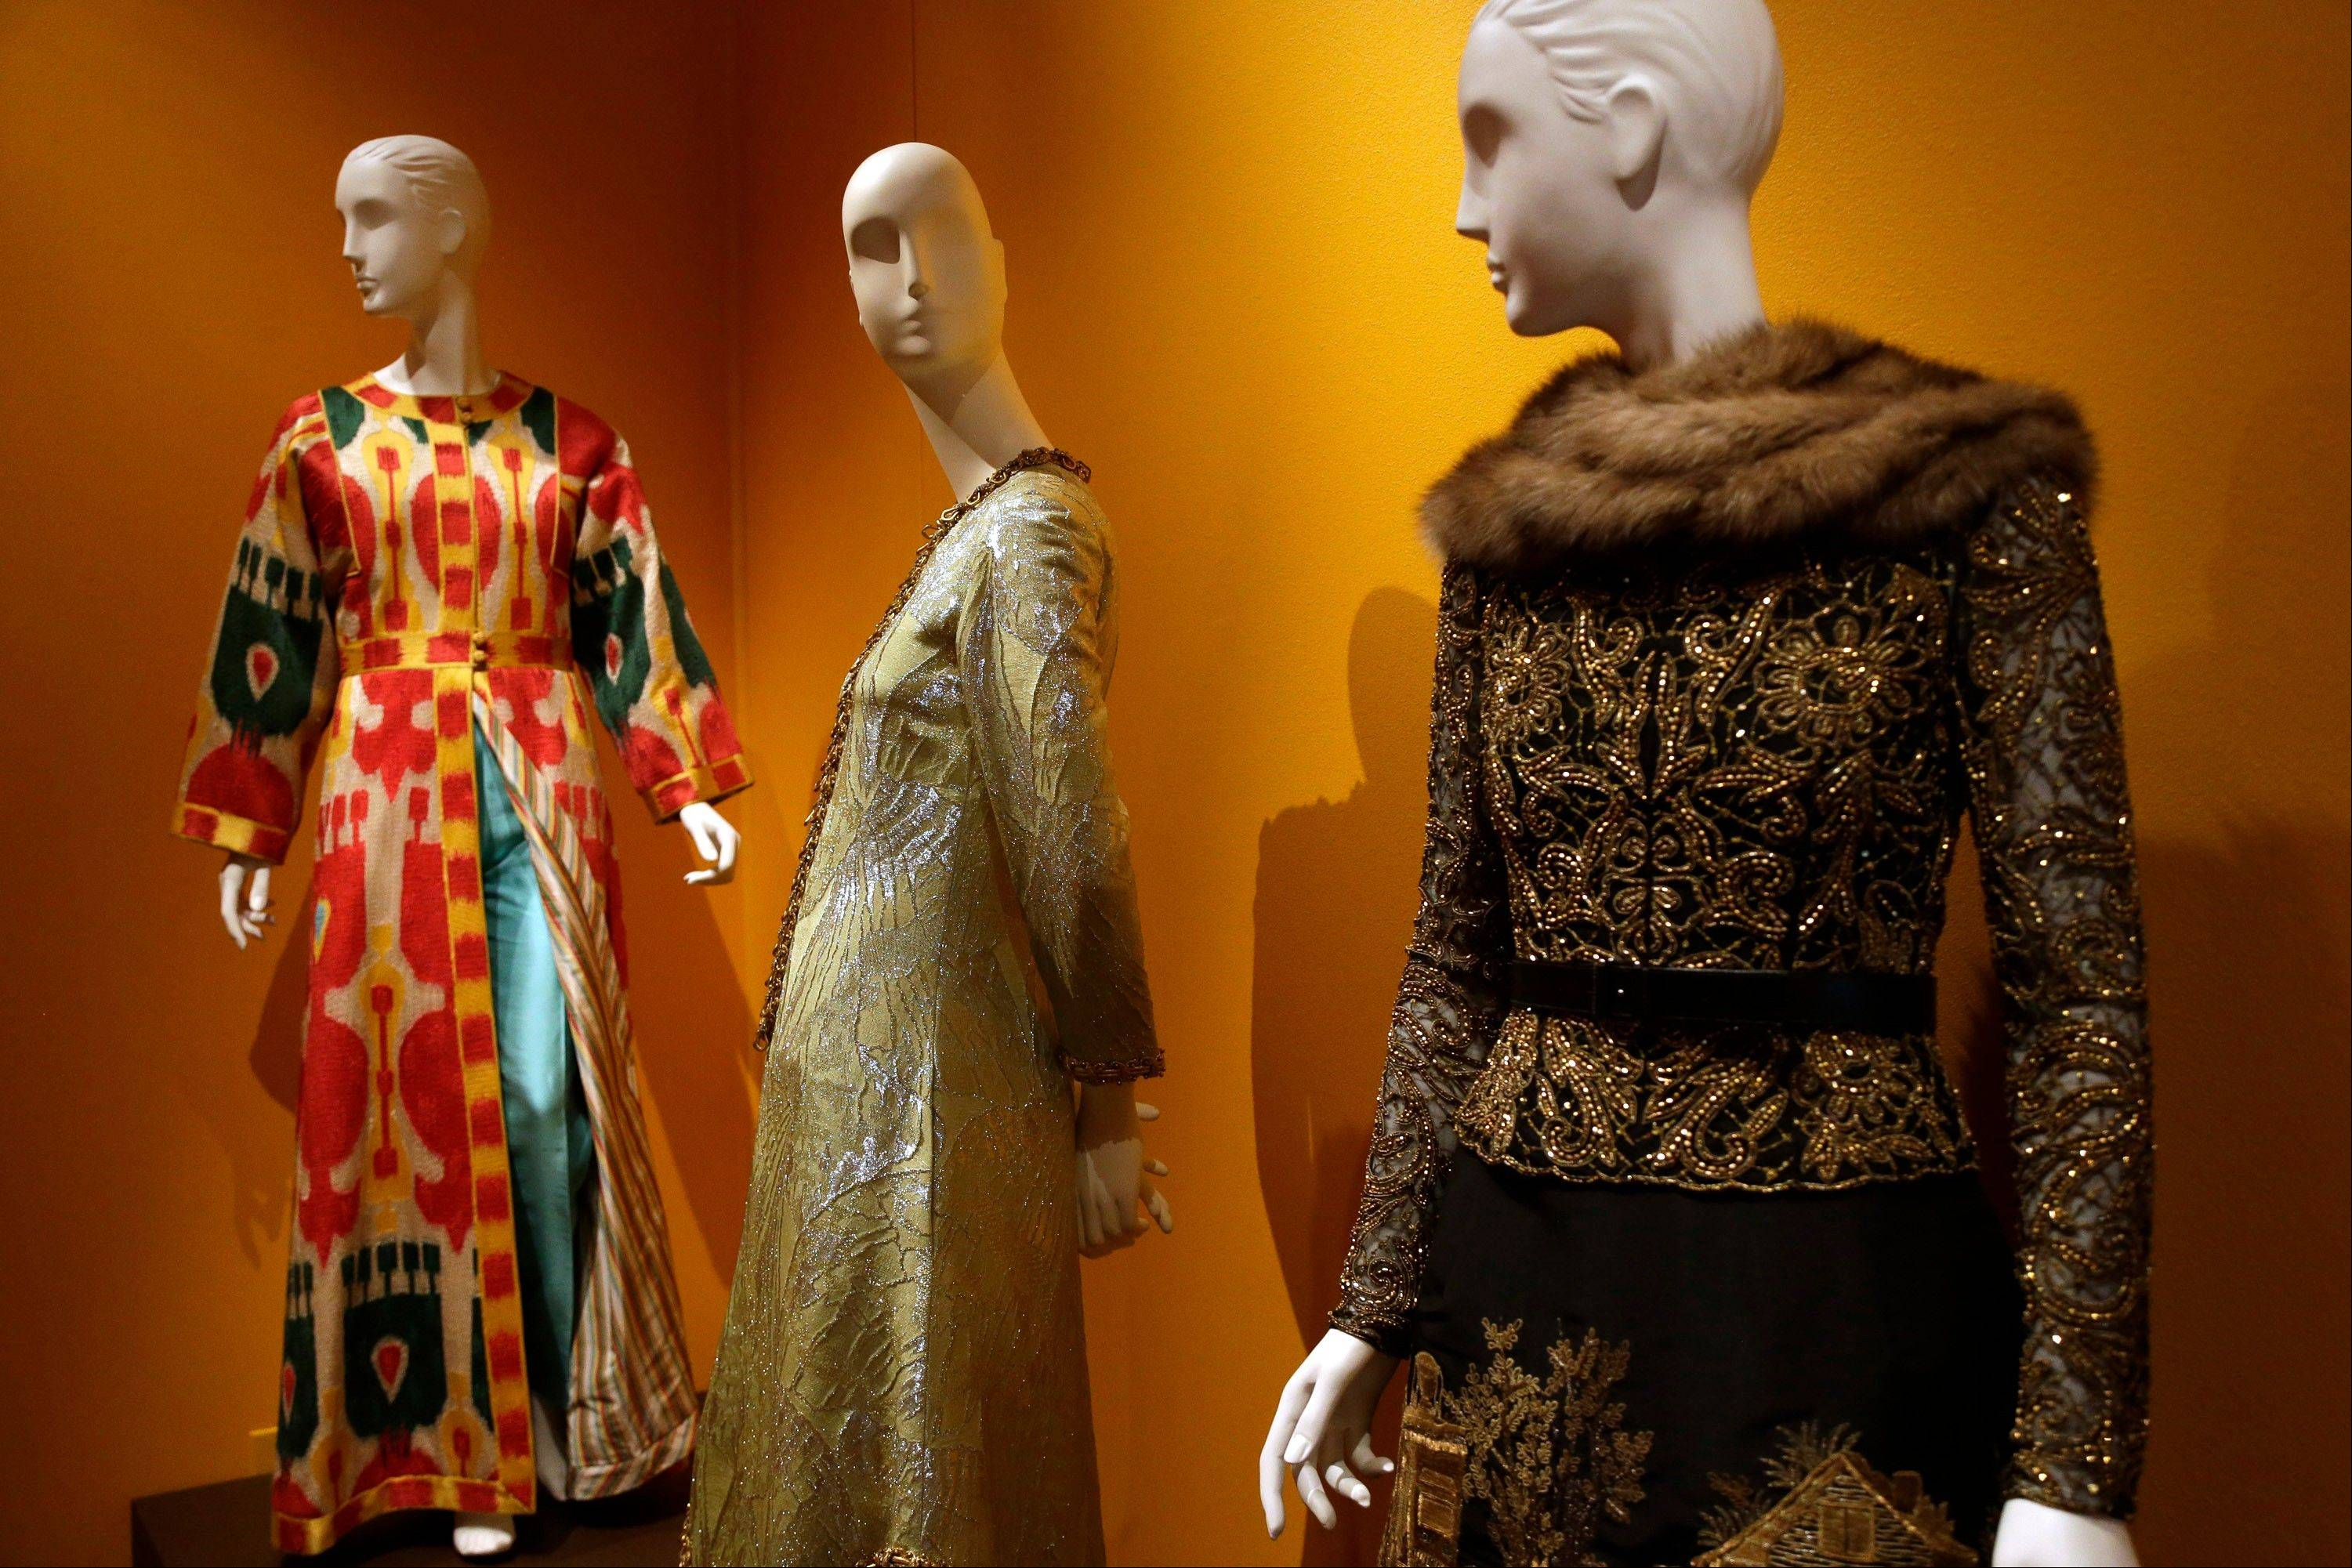 Evening ensemble creations by fashion designer Oscar de la Renta are displayed at the Clinton Presidential Library in Little Rock, Ark.